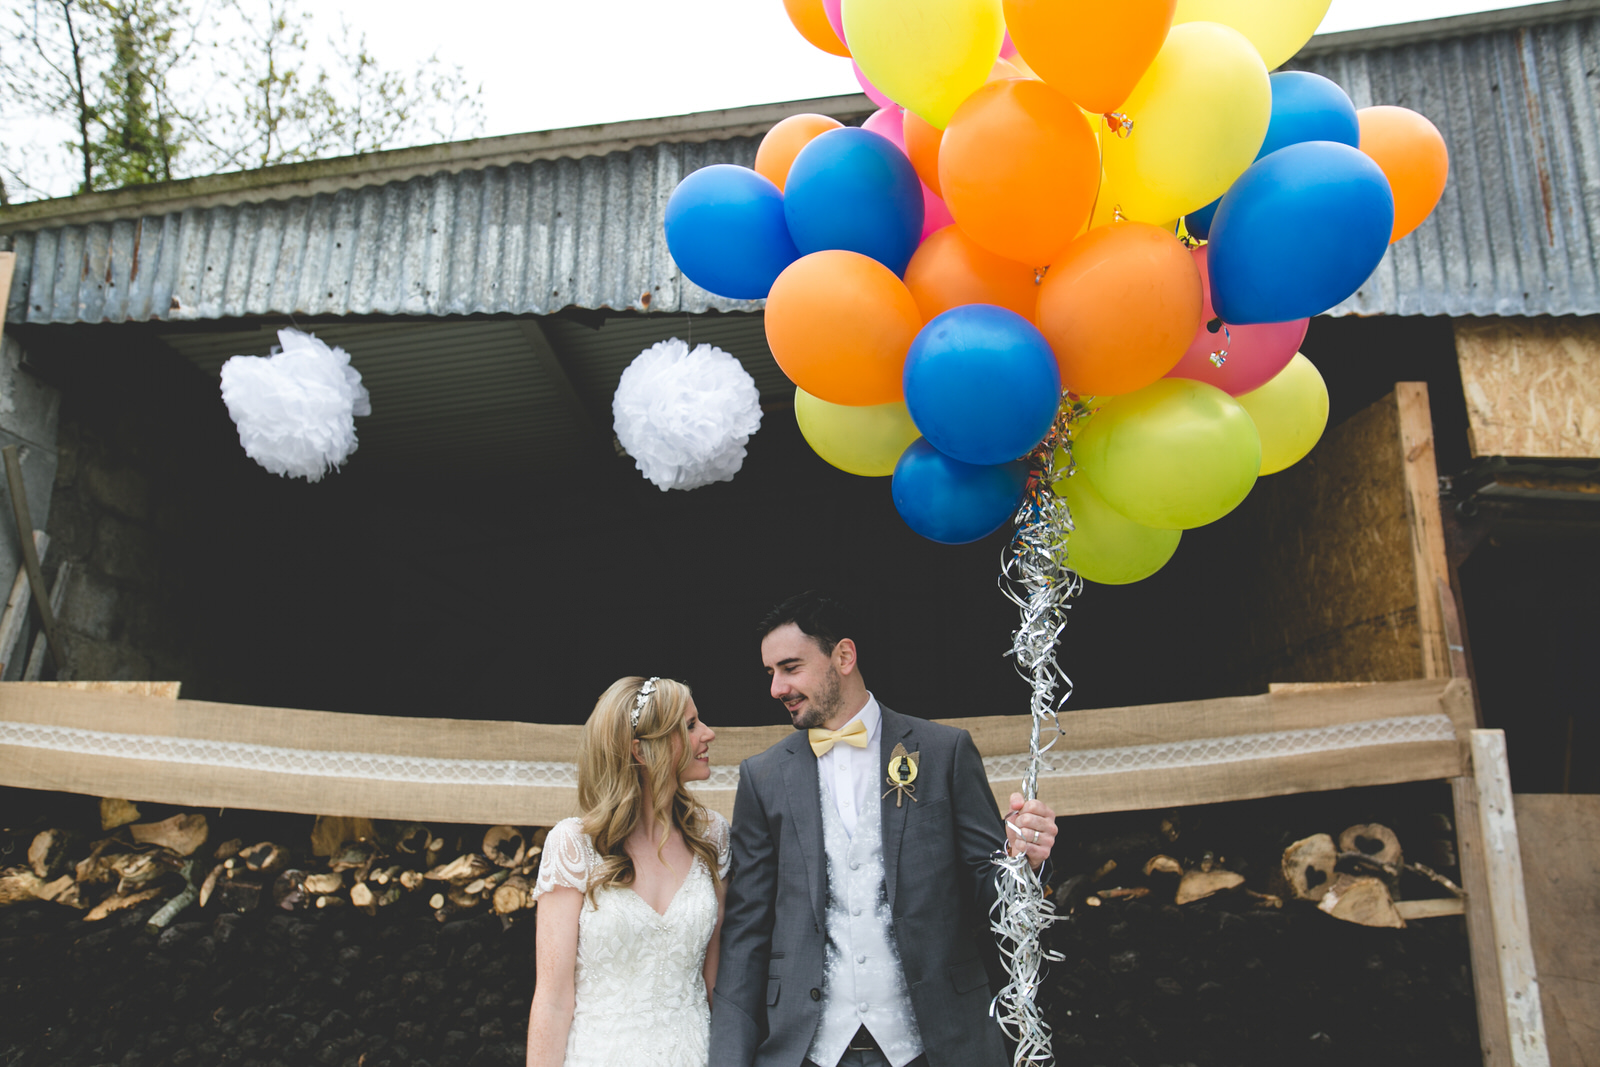 Up themed wedding with colourful balloons